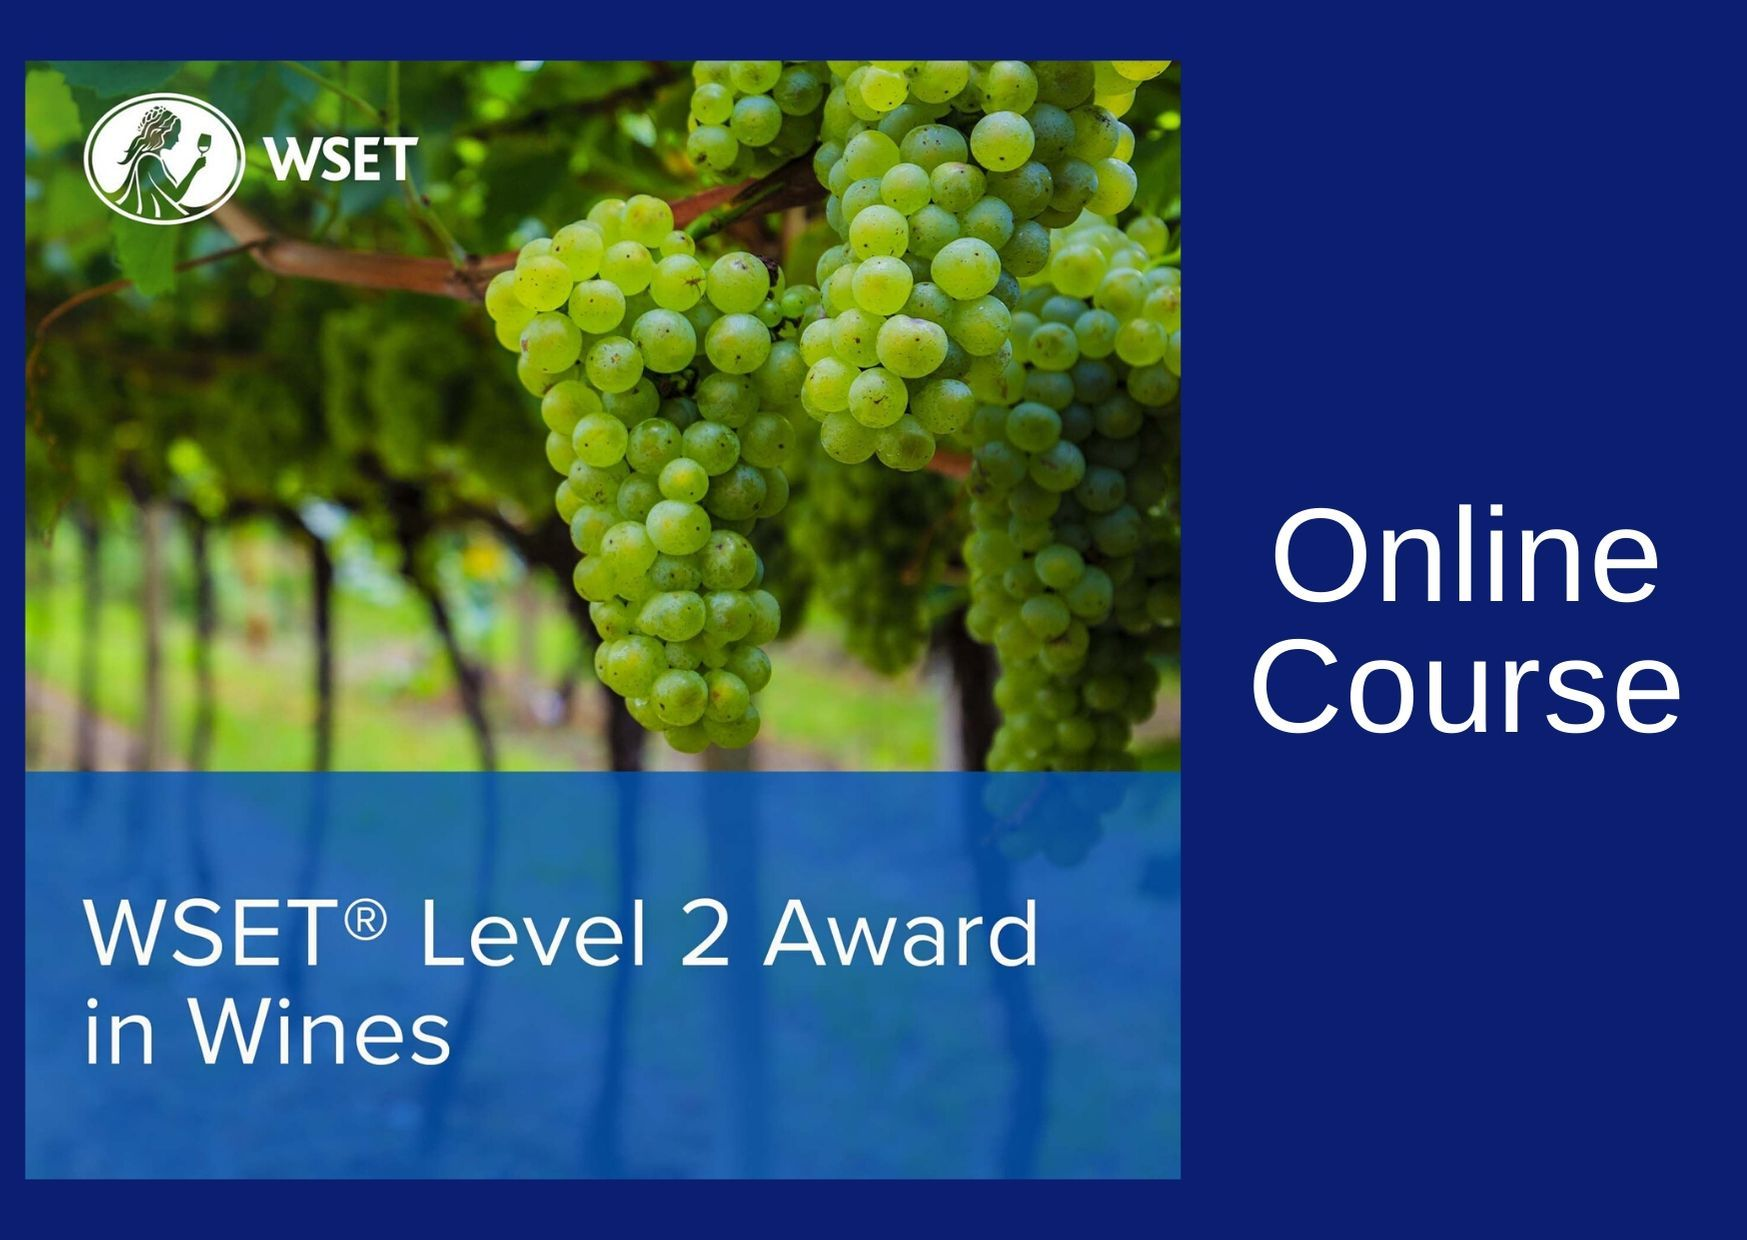 WSET Level 2 Award in Wines - Online - Afternoons